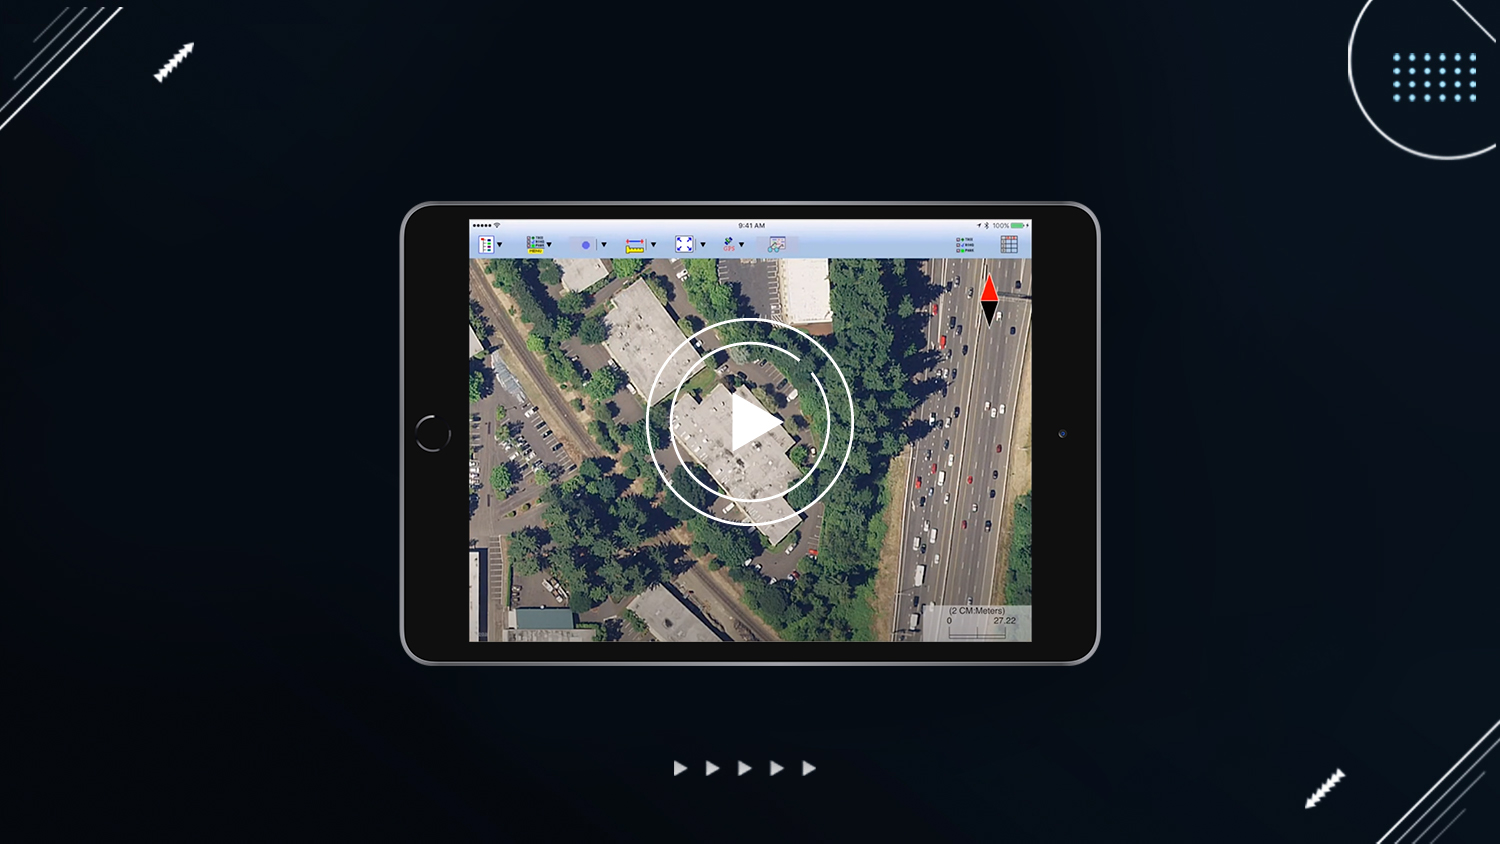 iCMTGIS Pro- Configuring iCMTGIS PRO with Arrow GNSS GPS GIS mobile mapping video tutorial